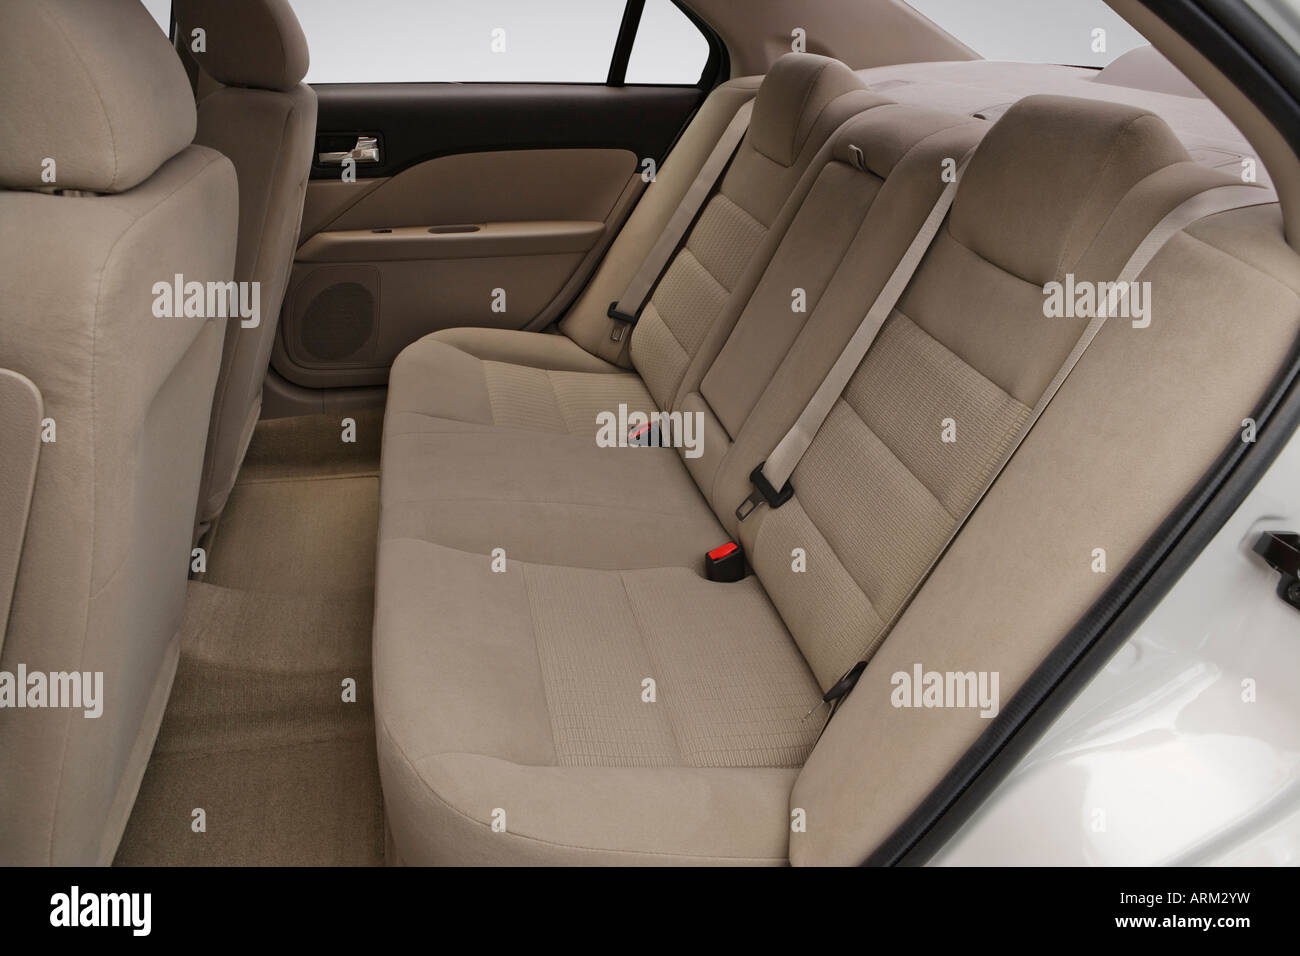 2008 Ford Fusion S in White - Rear seats - Stock Image